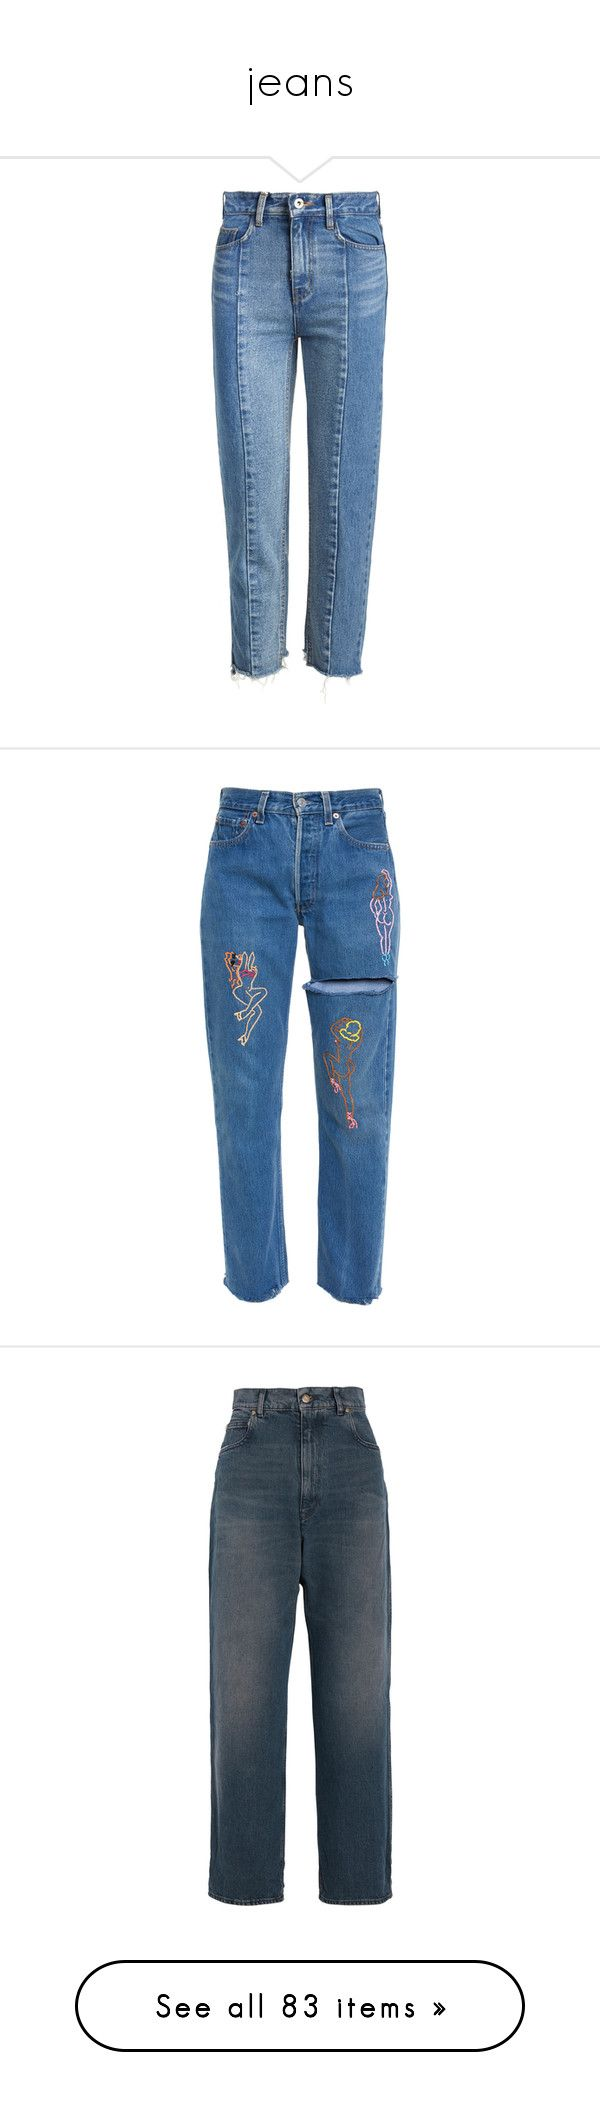 """""""jeans"""" by parkaiagogona ❤ liked on Polyvore featuring jeans, pants, bottoms, denim jeans, straight-leg jeans, cropped jeans, straight leg jeans, raw edge jeans, raw edge hem jeans and trousers"""